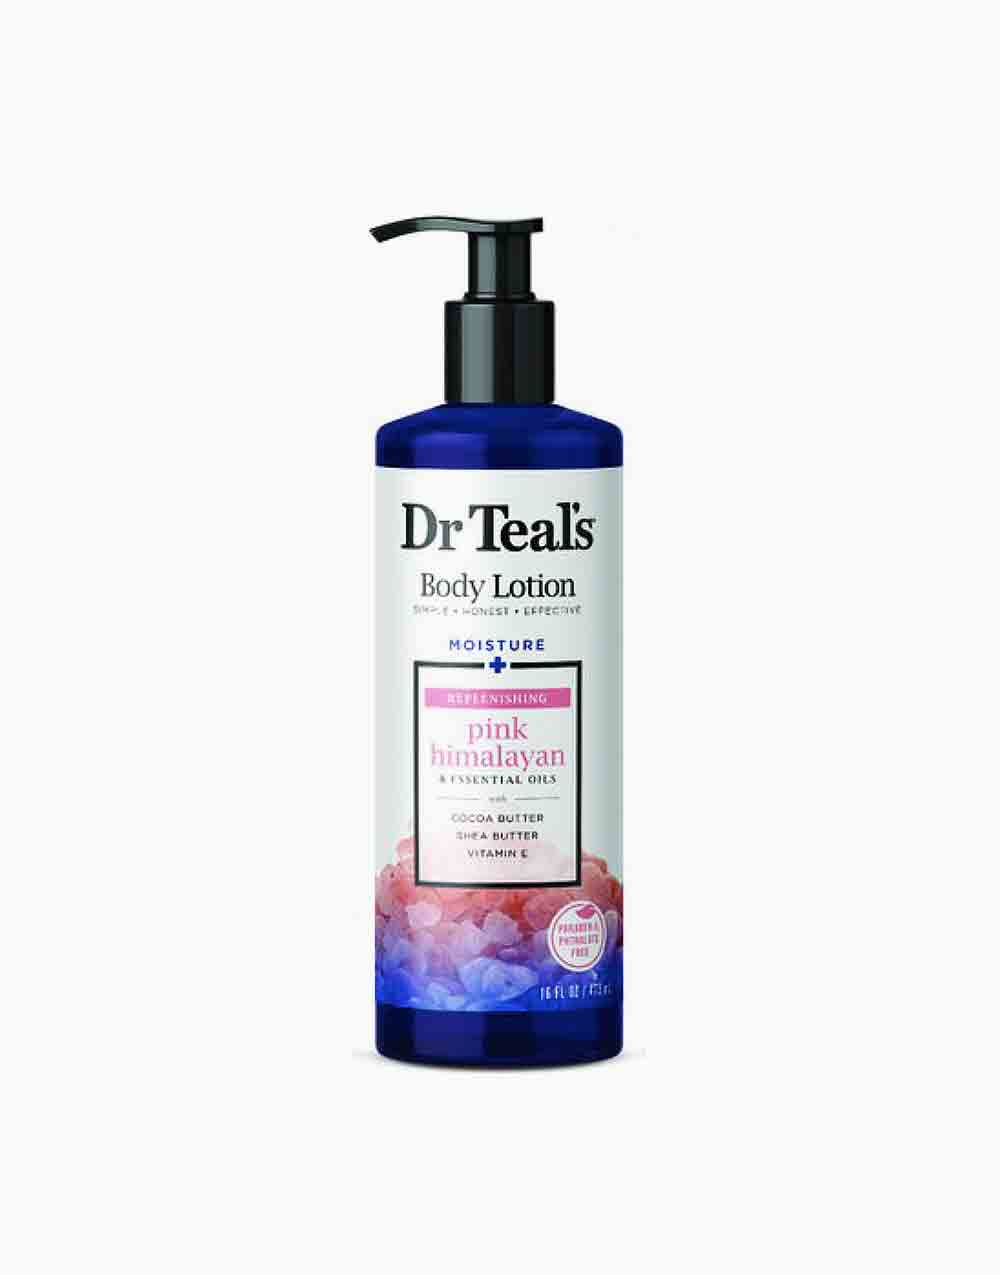 Replenishing Pink Himalayan Body Lotion by Dr. Teal's